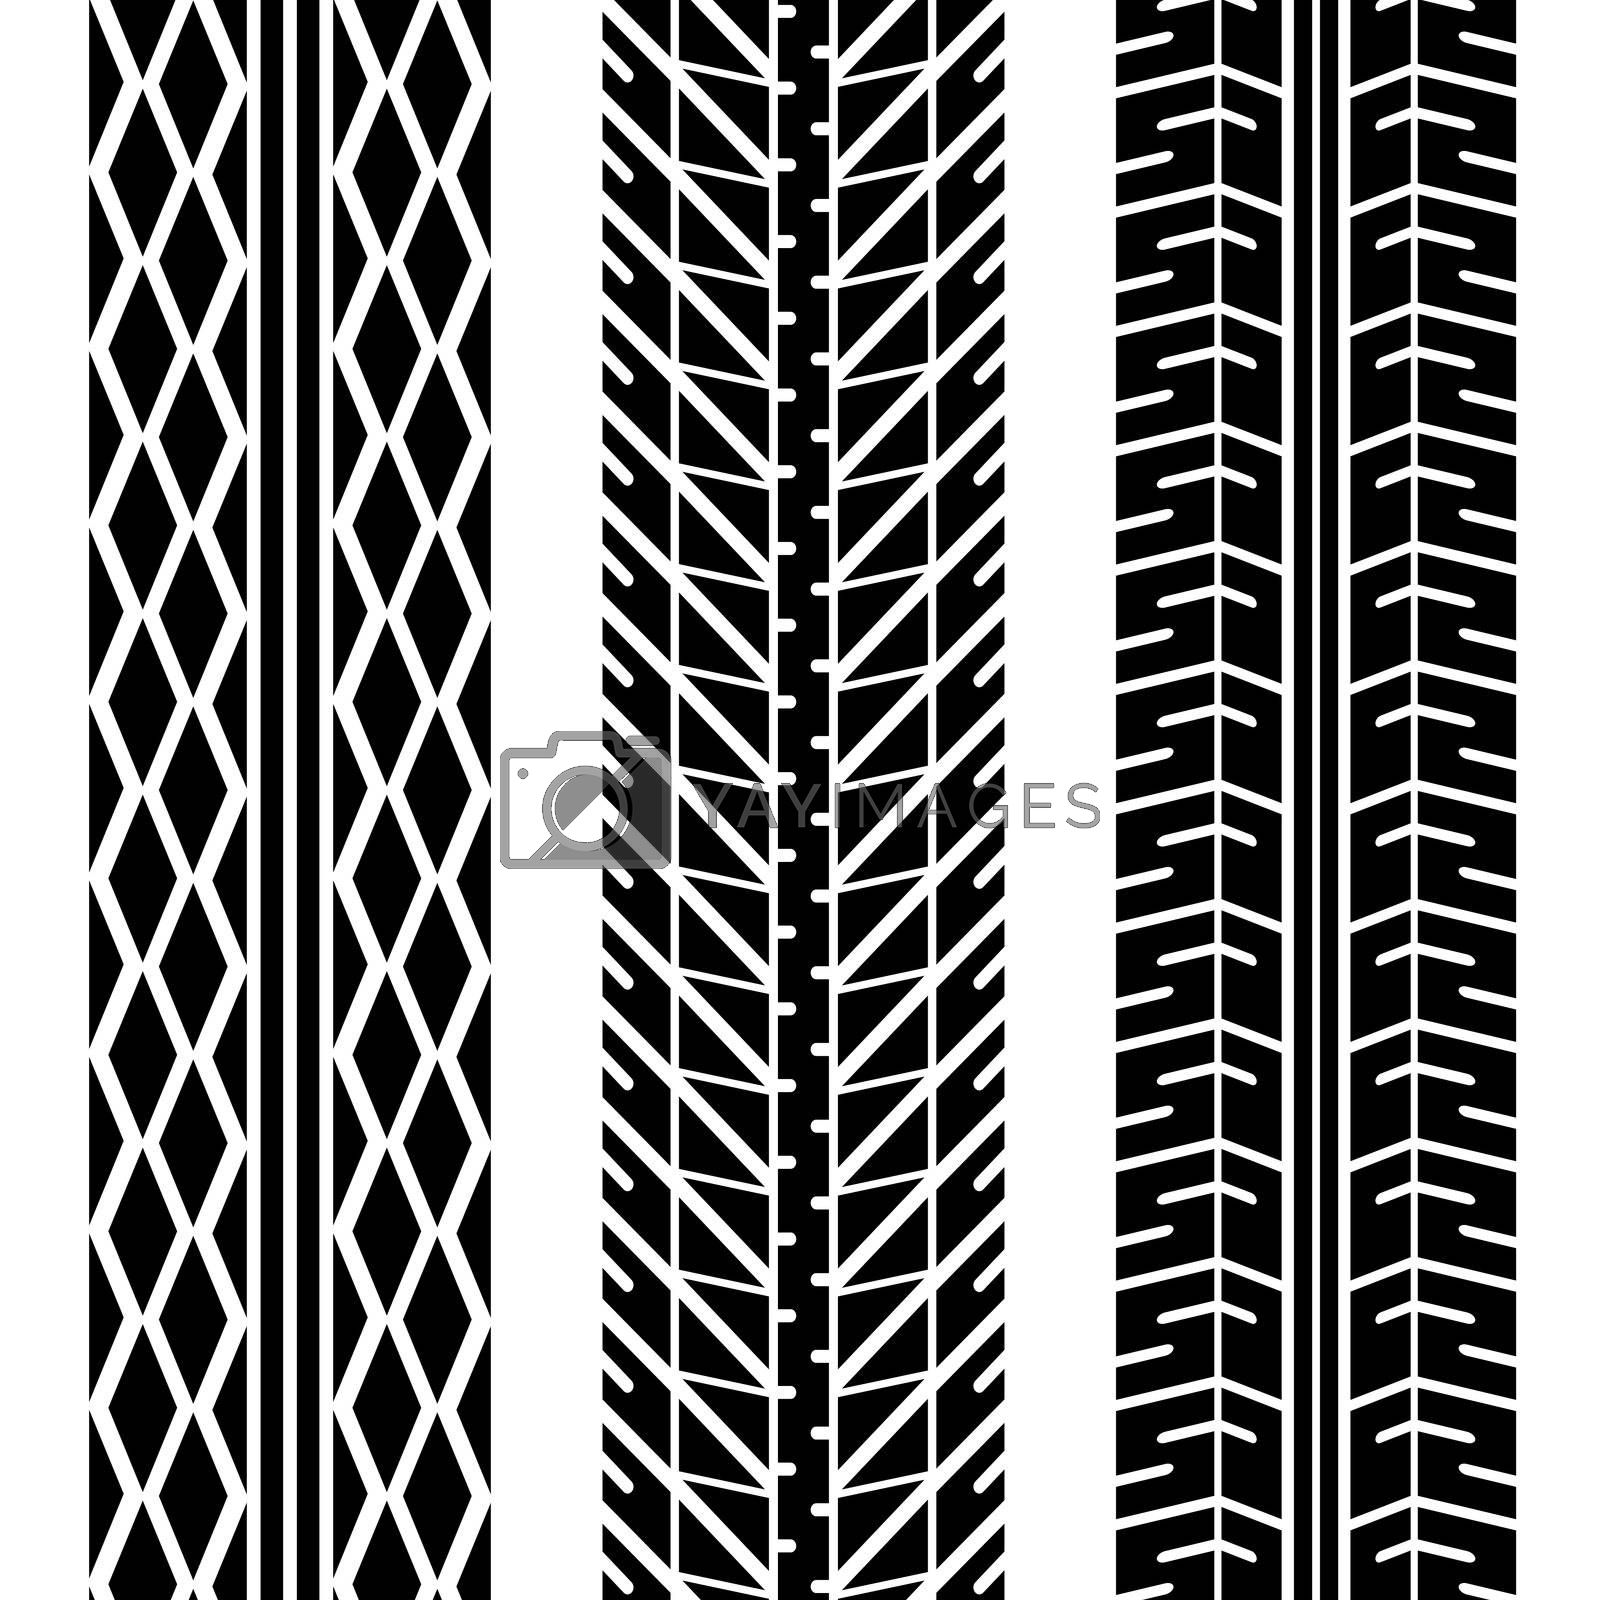 Royalty free image of road tires by nicemonkey